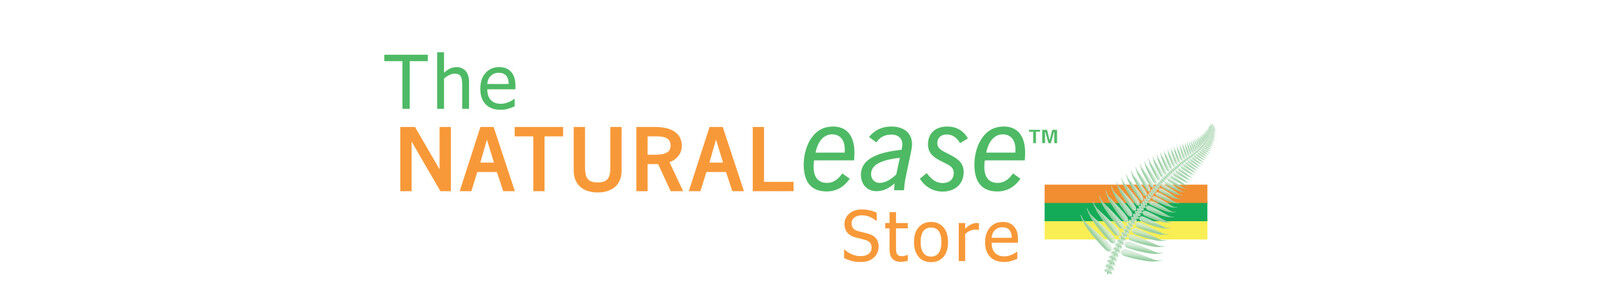 The Natural Ease Store